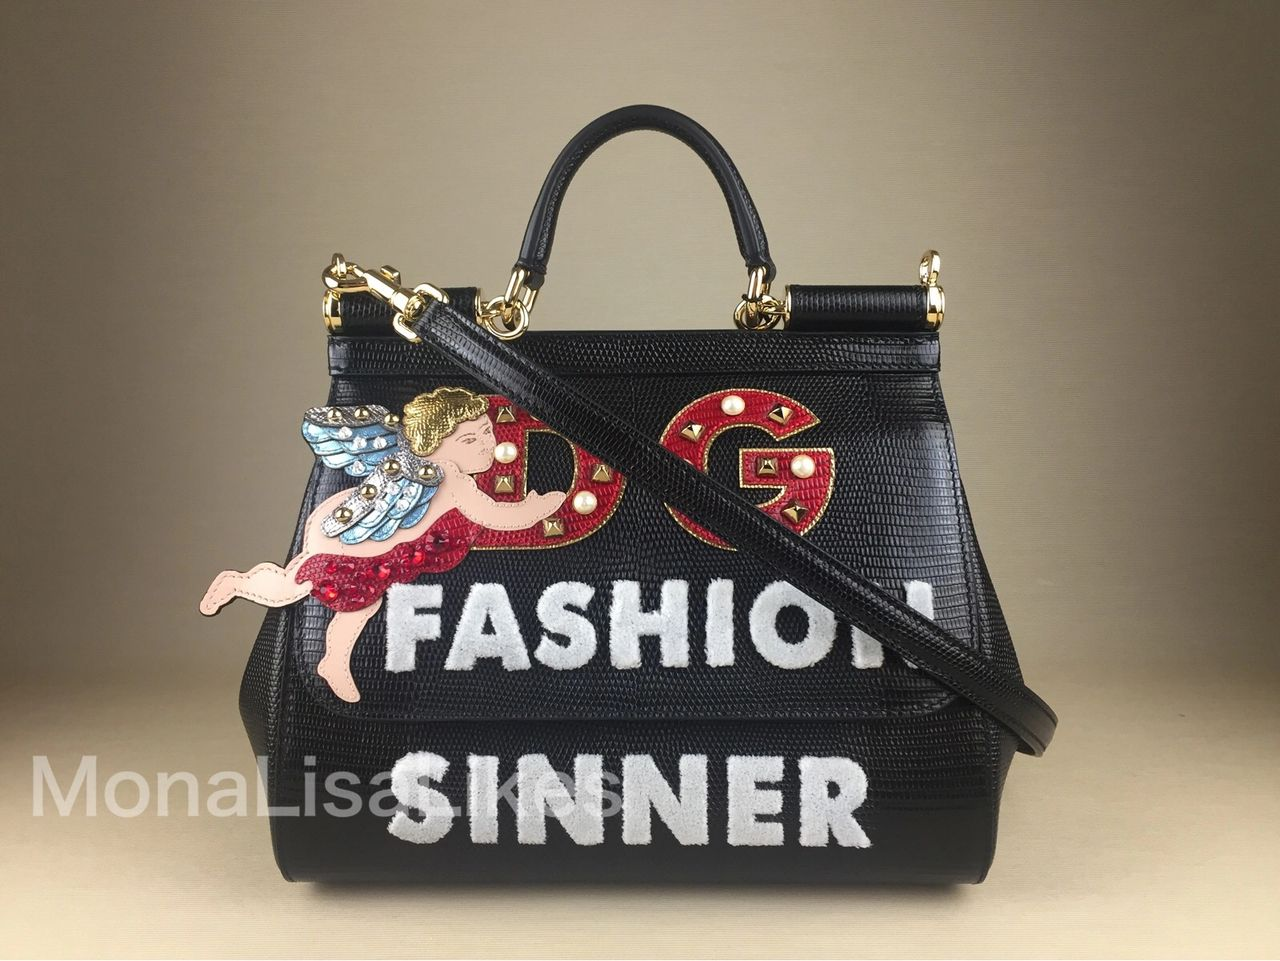 DOLCE & GABBANA Miss Sicily Fashion Sinnr bag from Fall Winter 2018-2019 bag